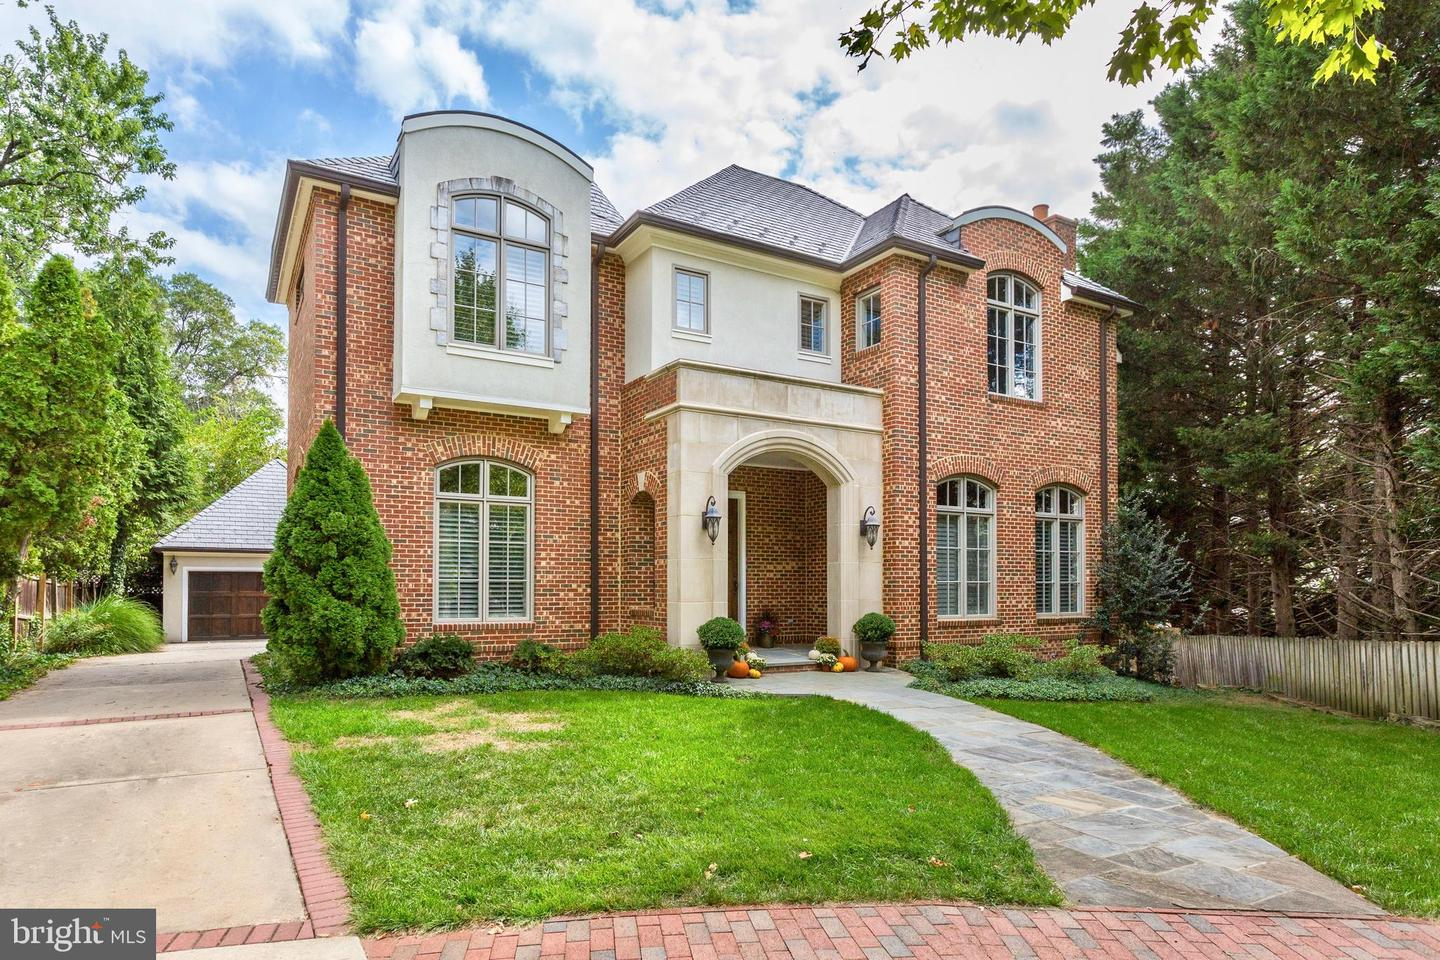 116 E MELROSE STREET, CHEVY CHASE, Maryland